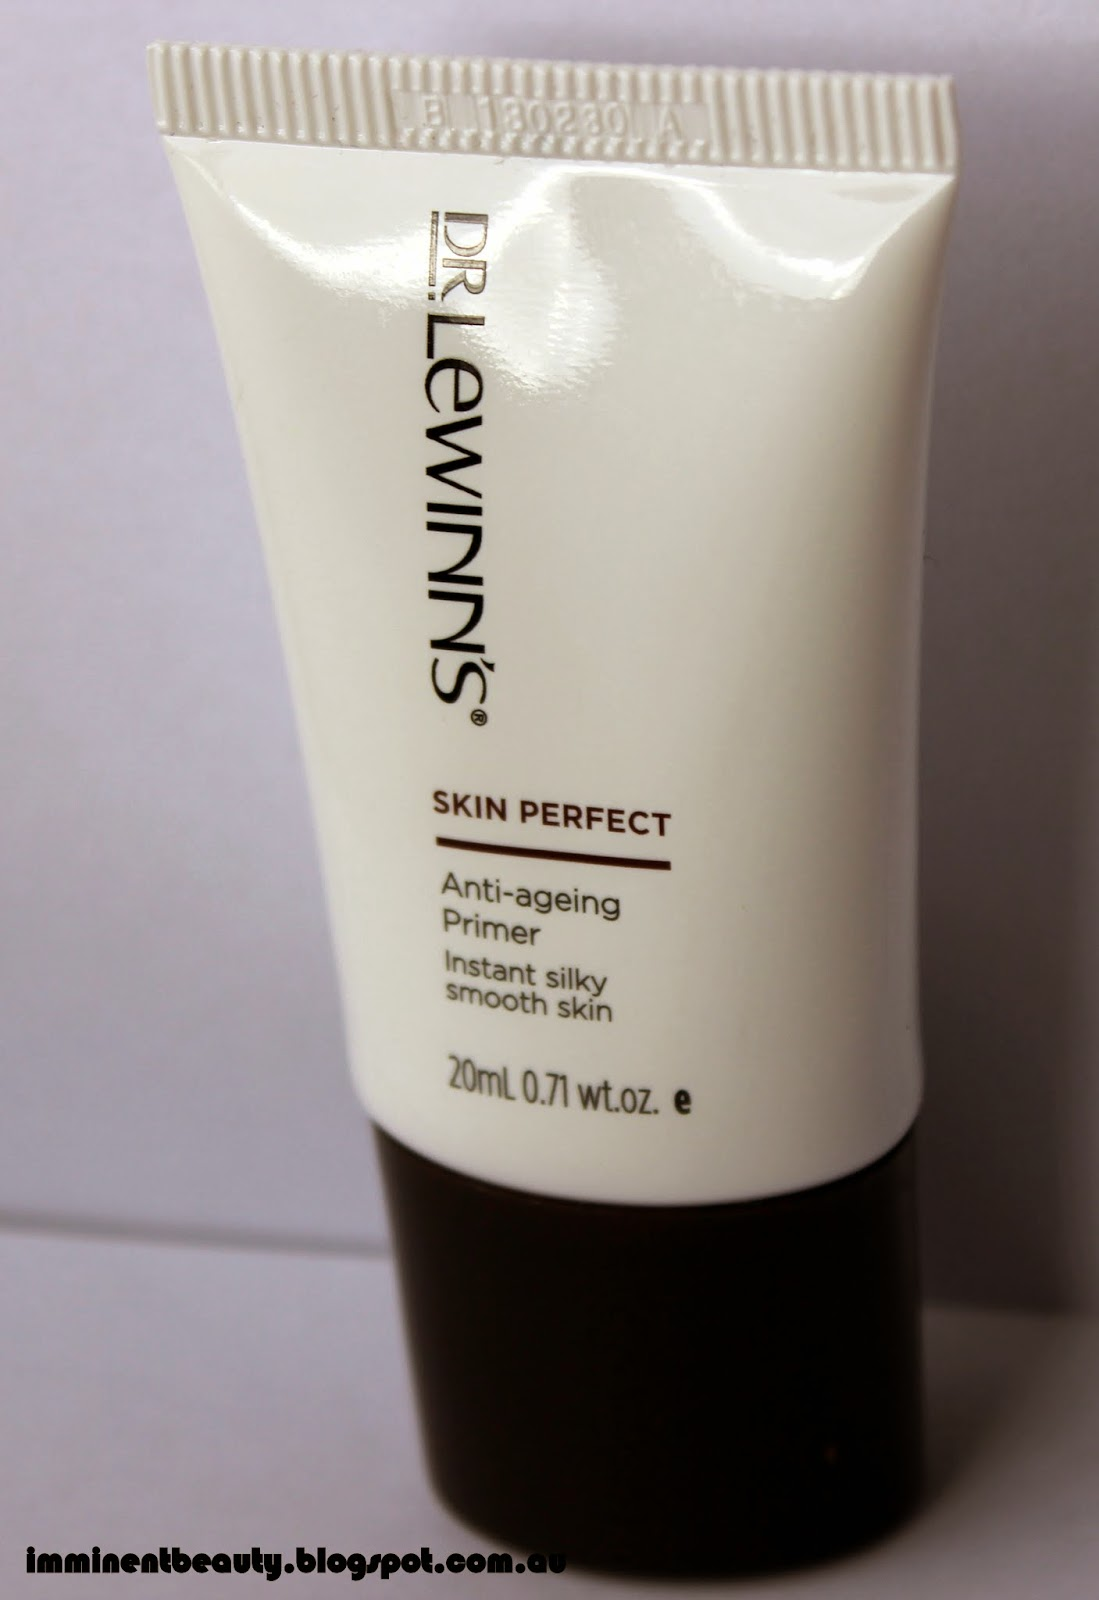 Imminent Beauty: Review: Dr Lewinns Skin Perfect Anti-Aging Primer